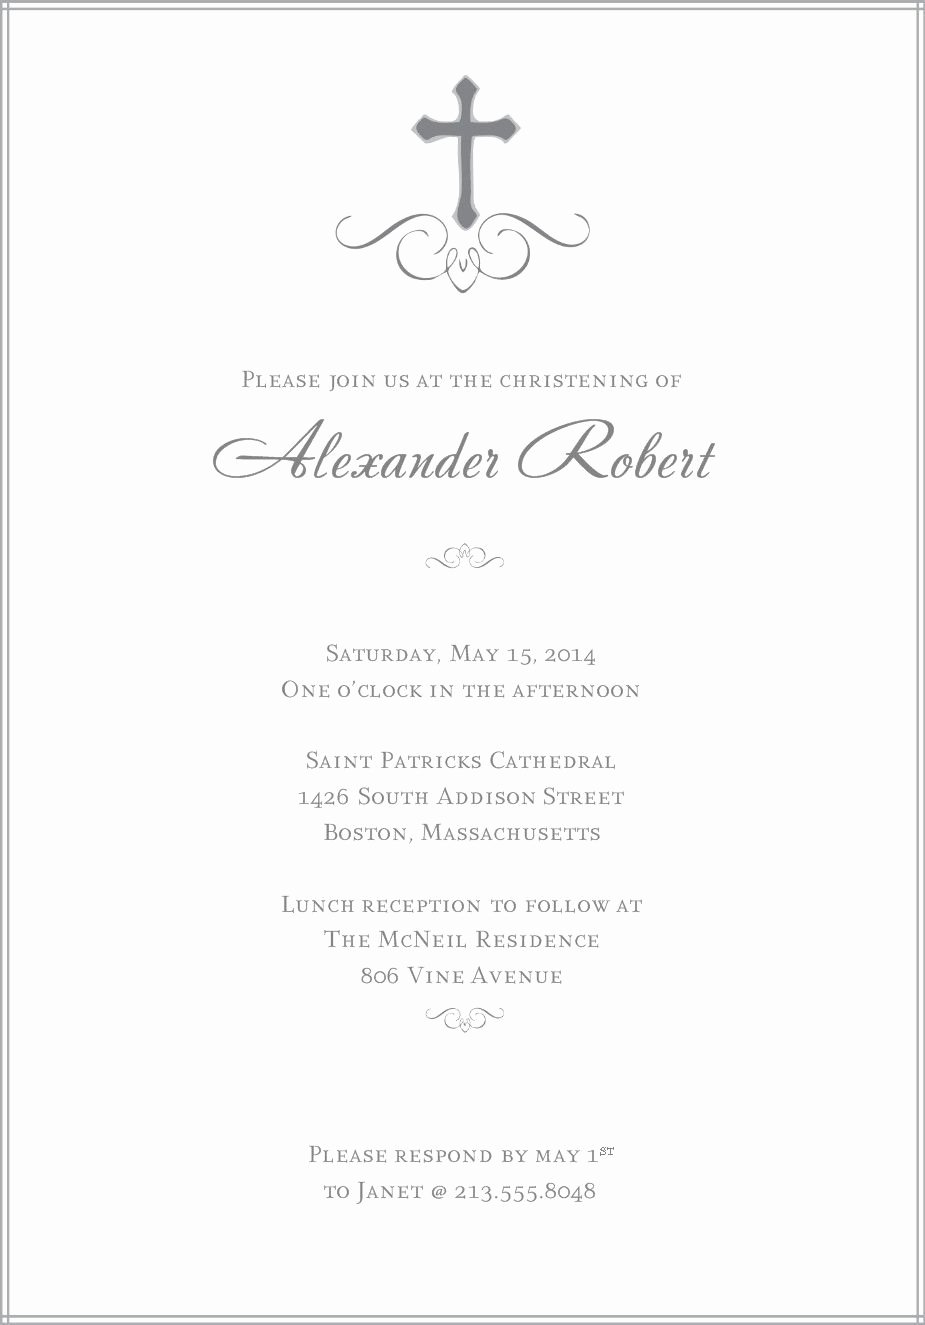 Baptism Invitation Template Microsoft Word Lovely Baptism Invitations Templates Free Download Daughter & son